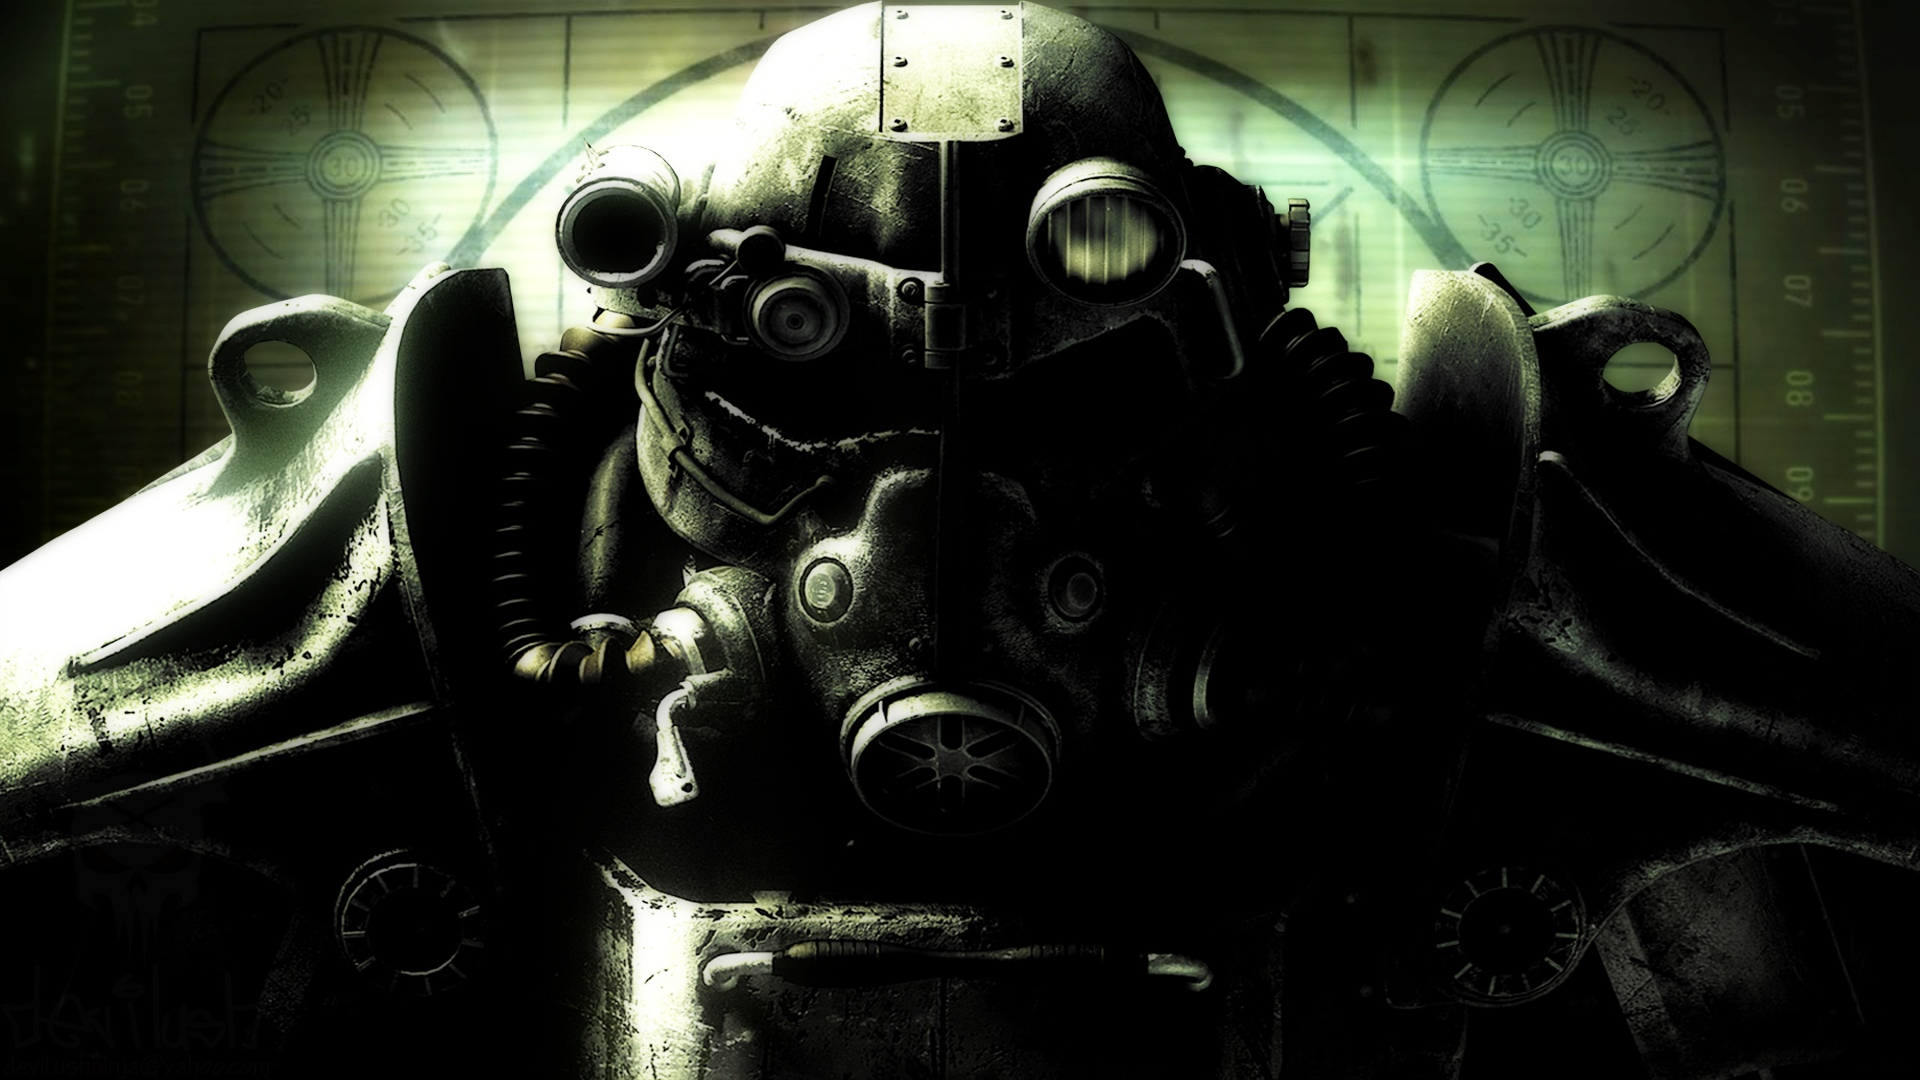 Fall Out Boy Android Wallpaper Fallout 3 Xbox 360 Nerd Bacon Reviews